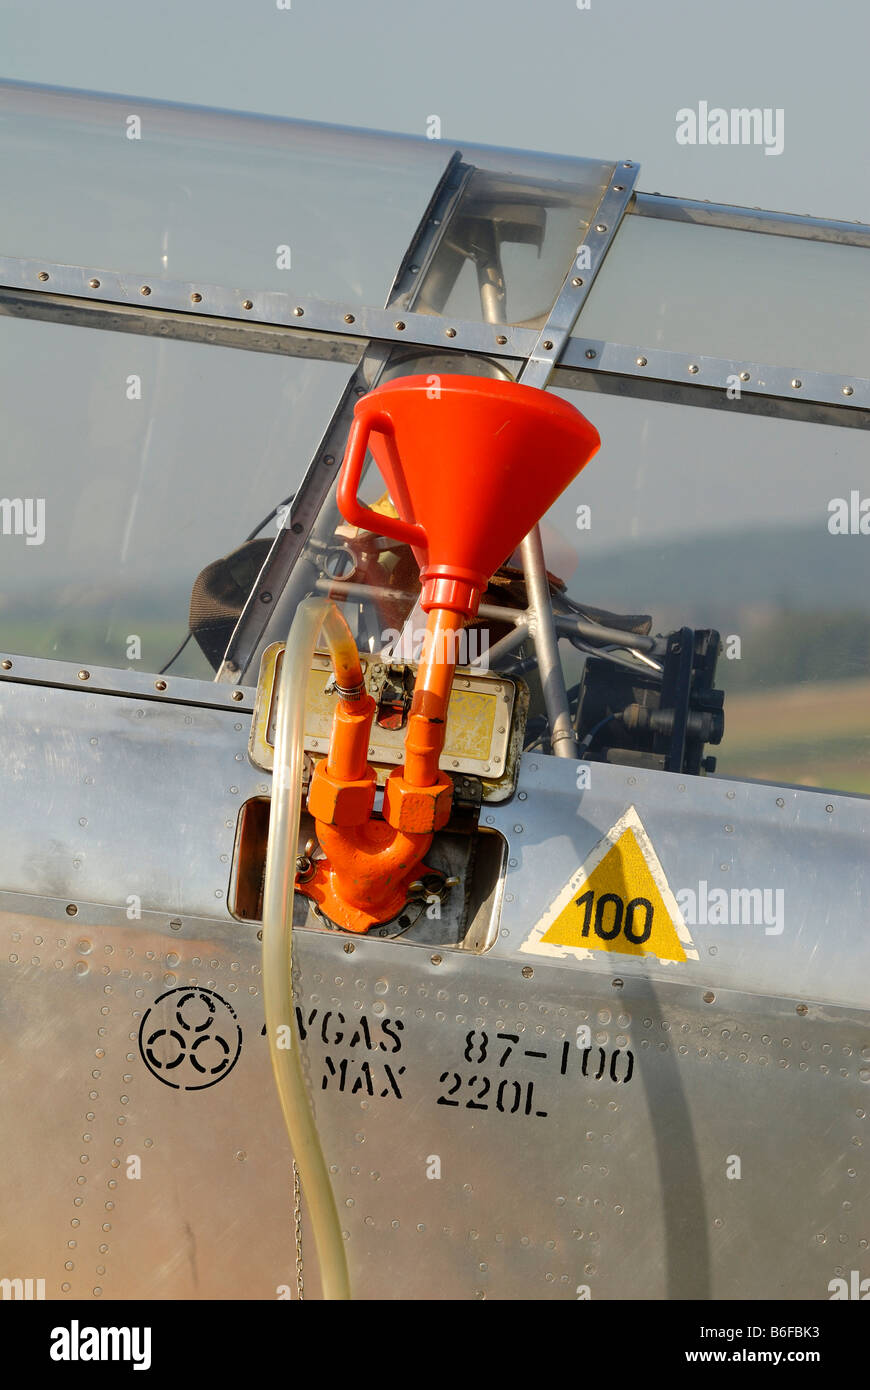 Refueling device of a propeller-driven aircraft - Stock Image